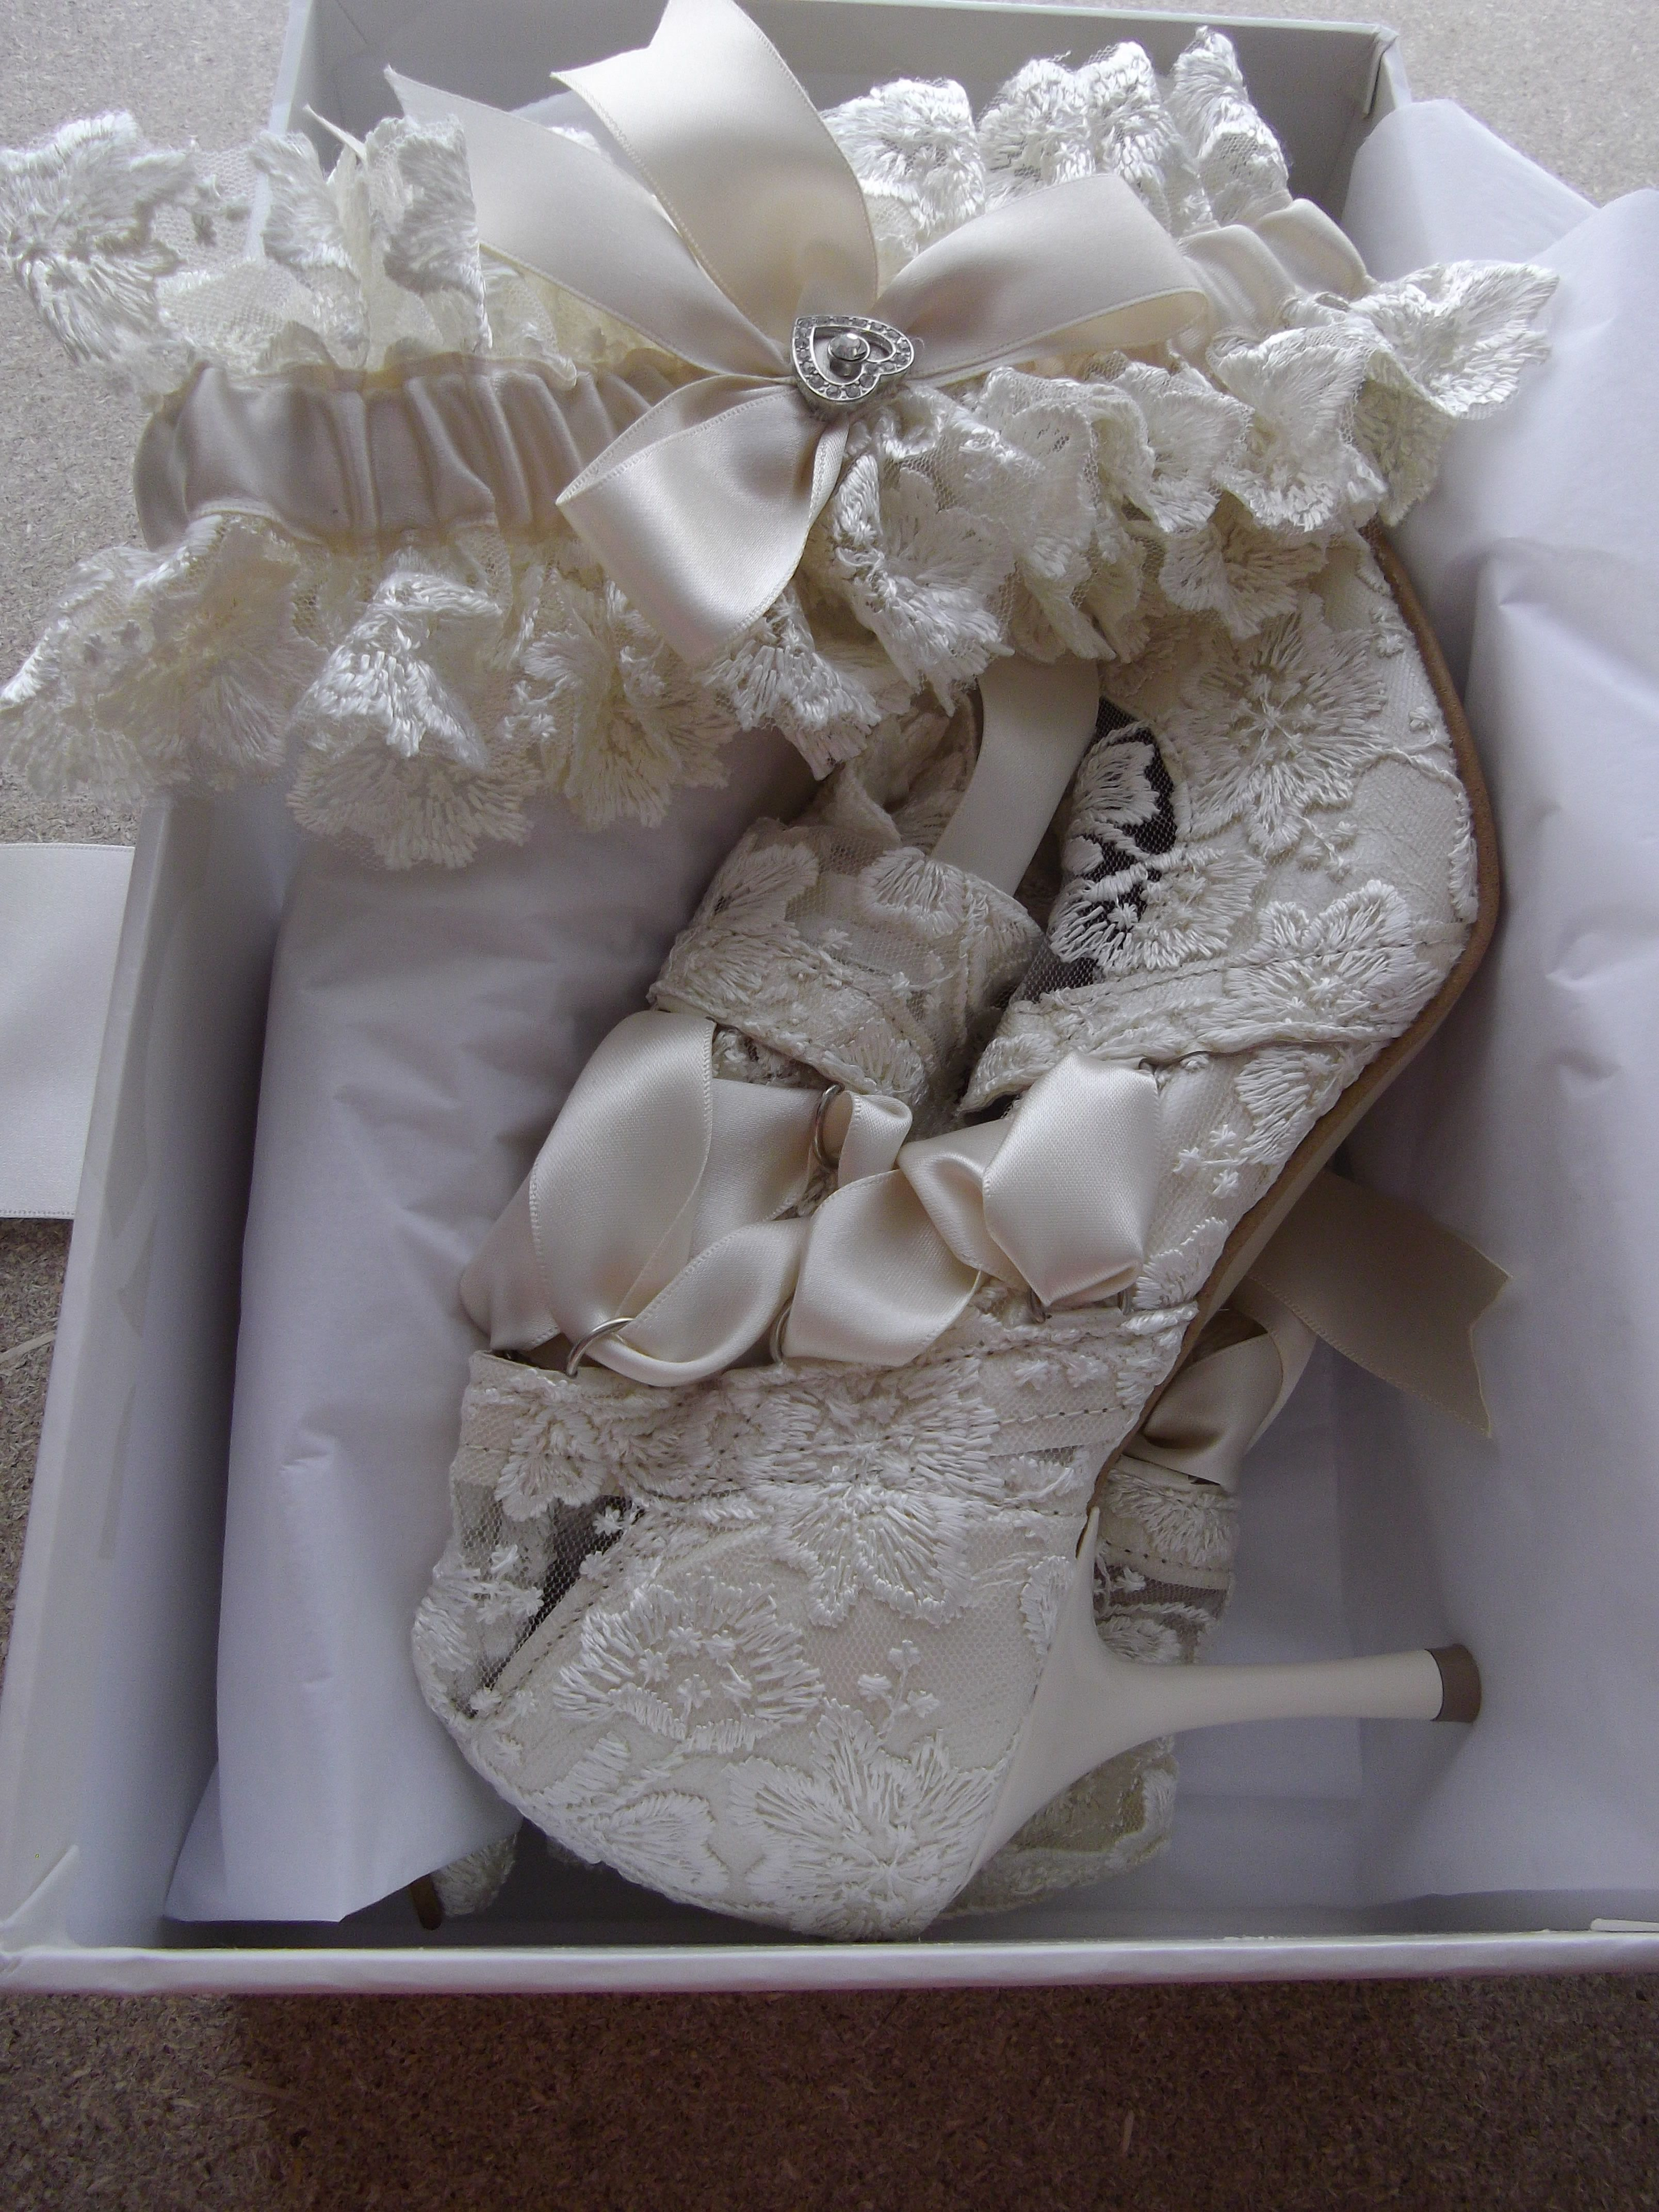 Wouldn't you love to receive these gorgeous lace wedding boots with matching garter